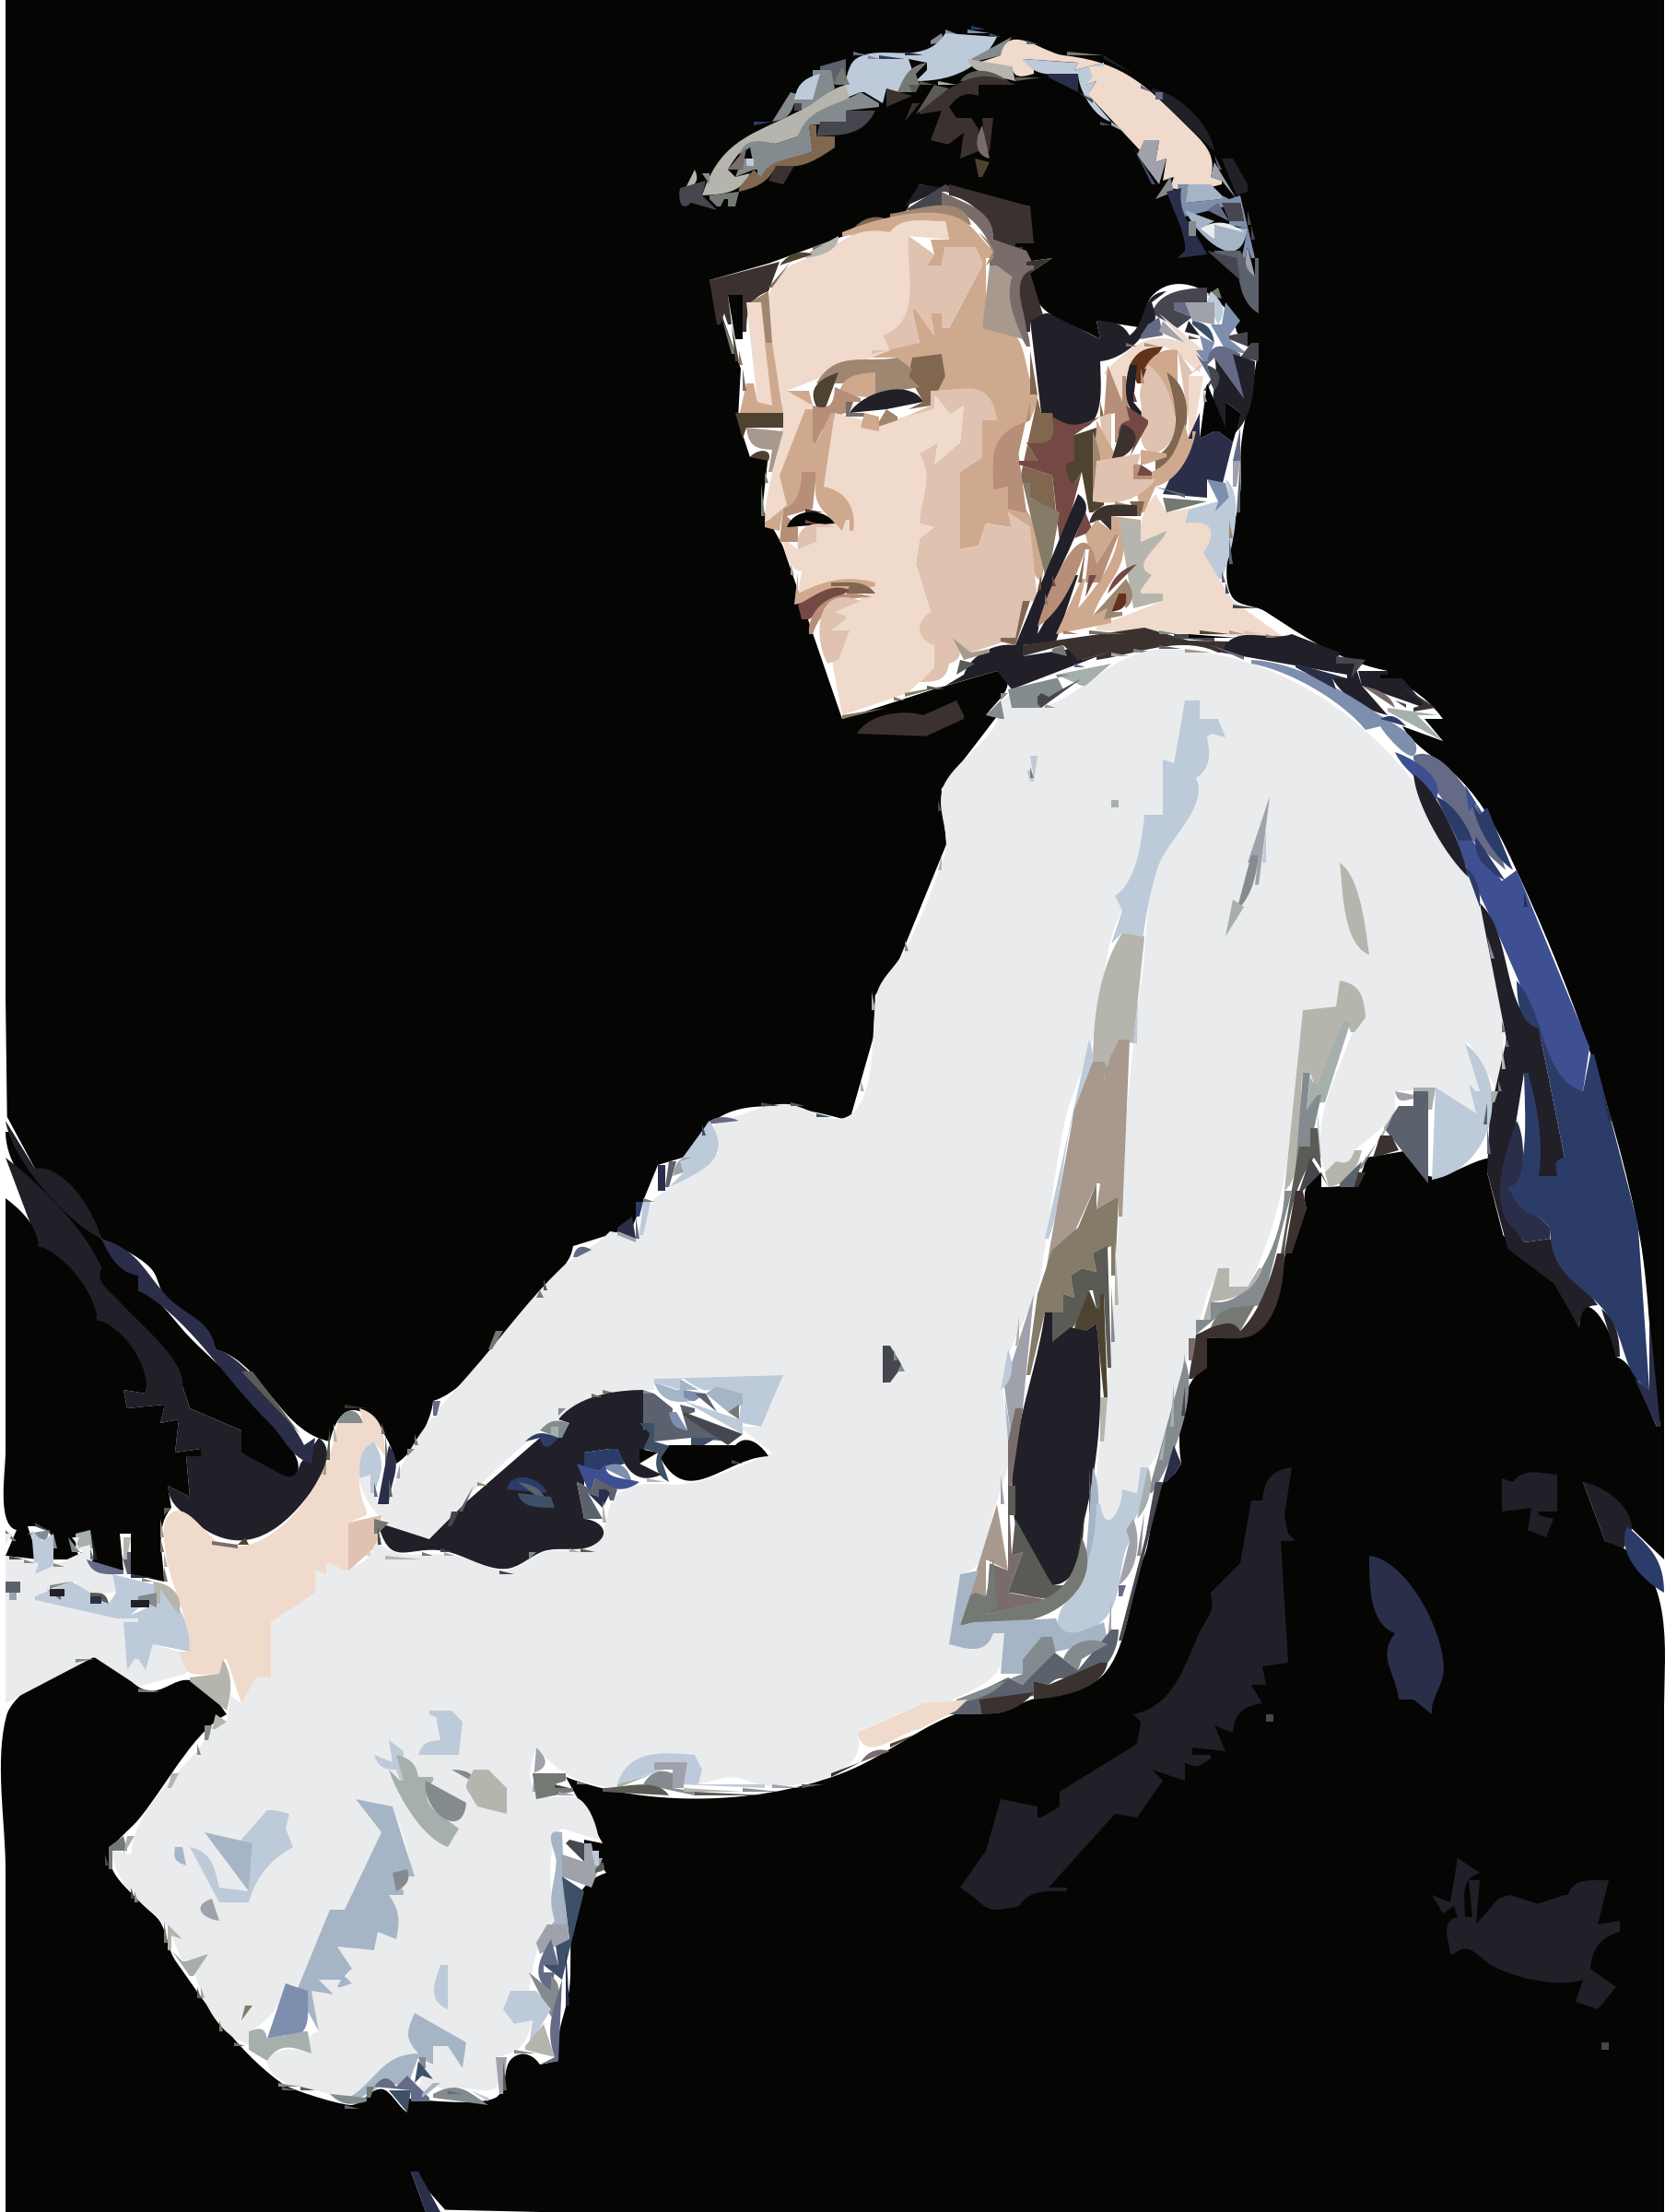 David Bowie by rejon